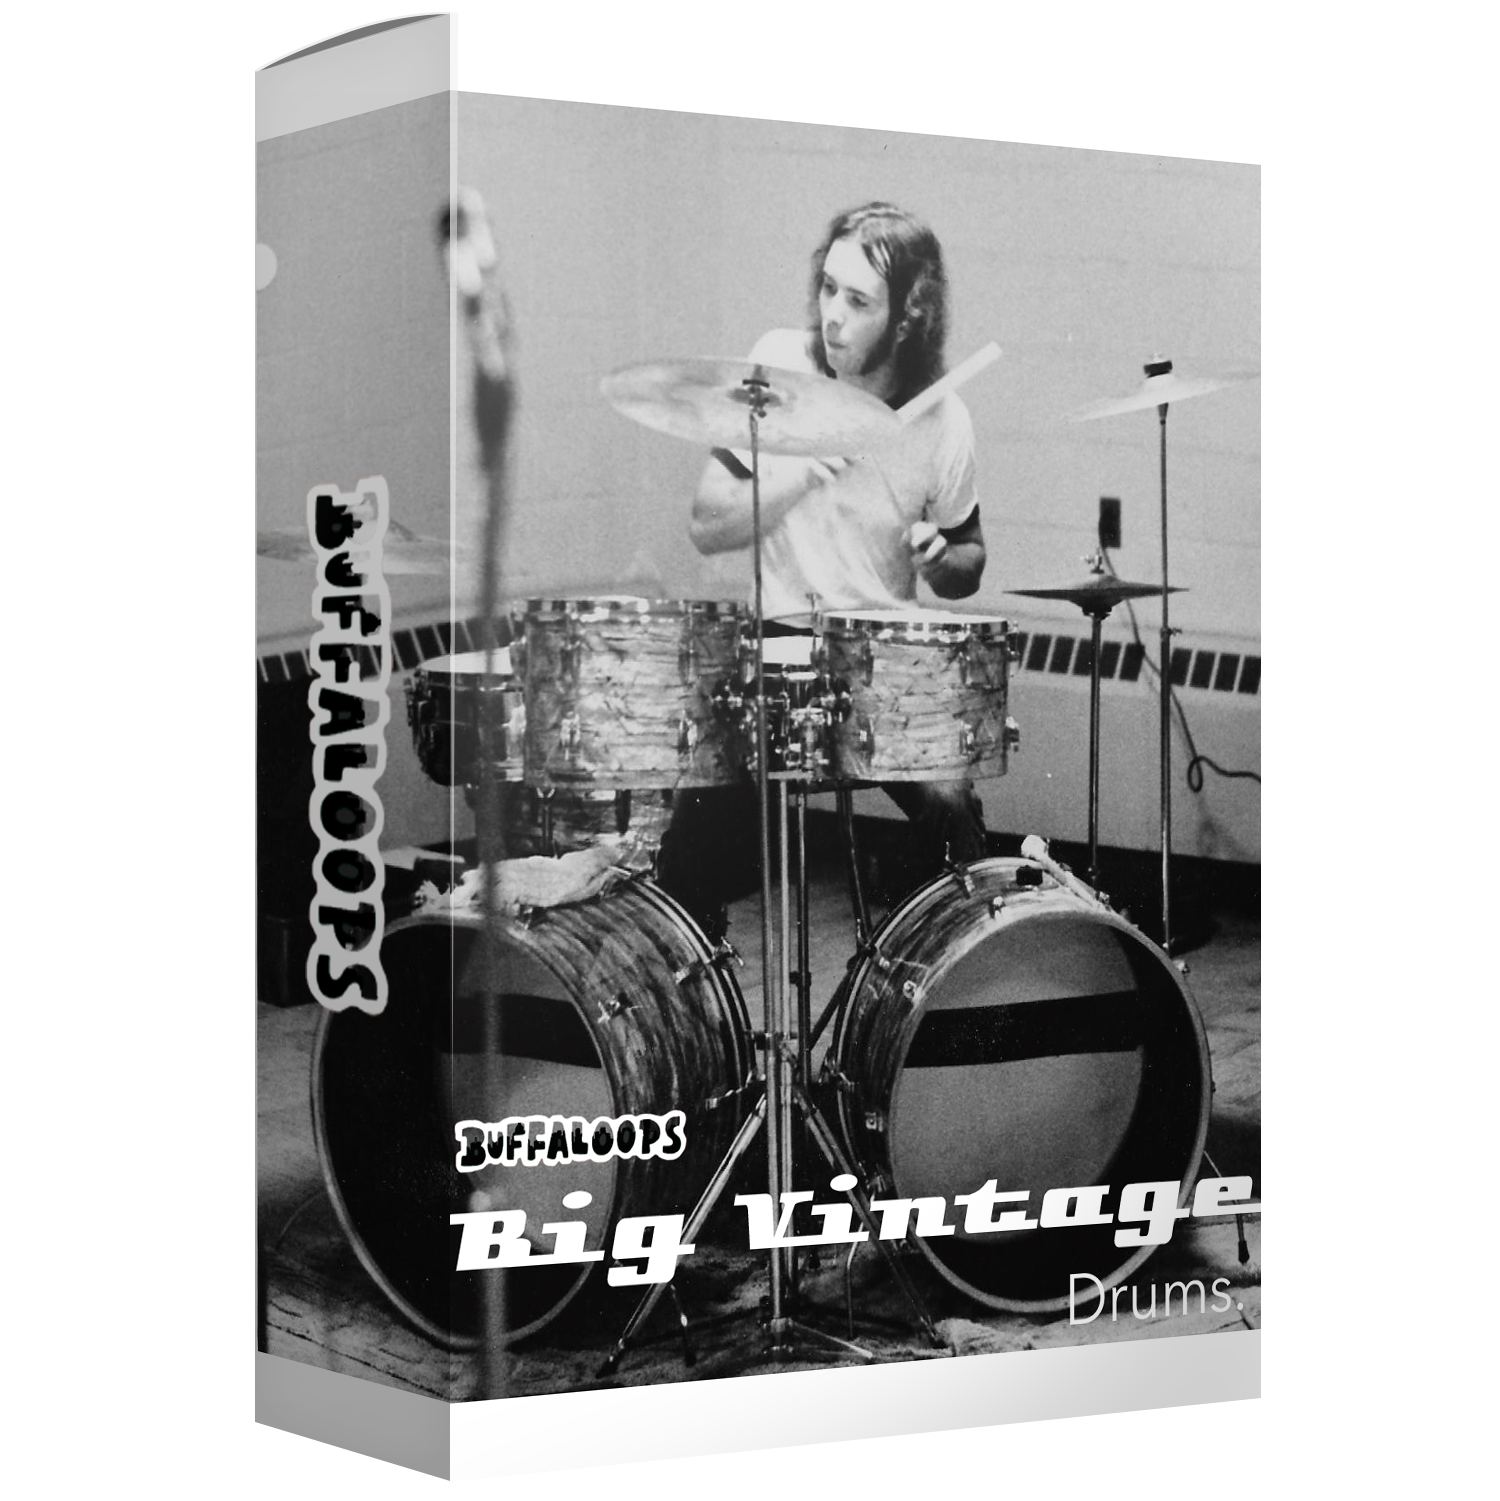 Vintage Drum Samples and Pack with Loops, Hits, and One Shots by Buffaloops